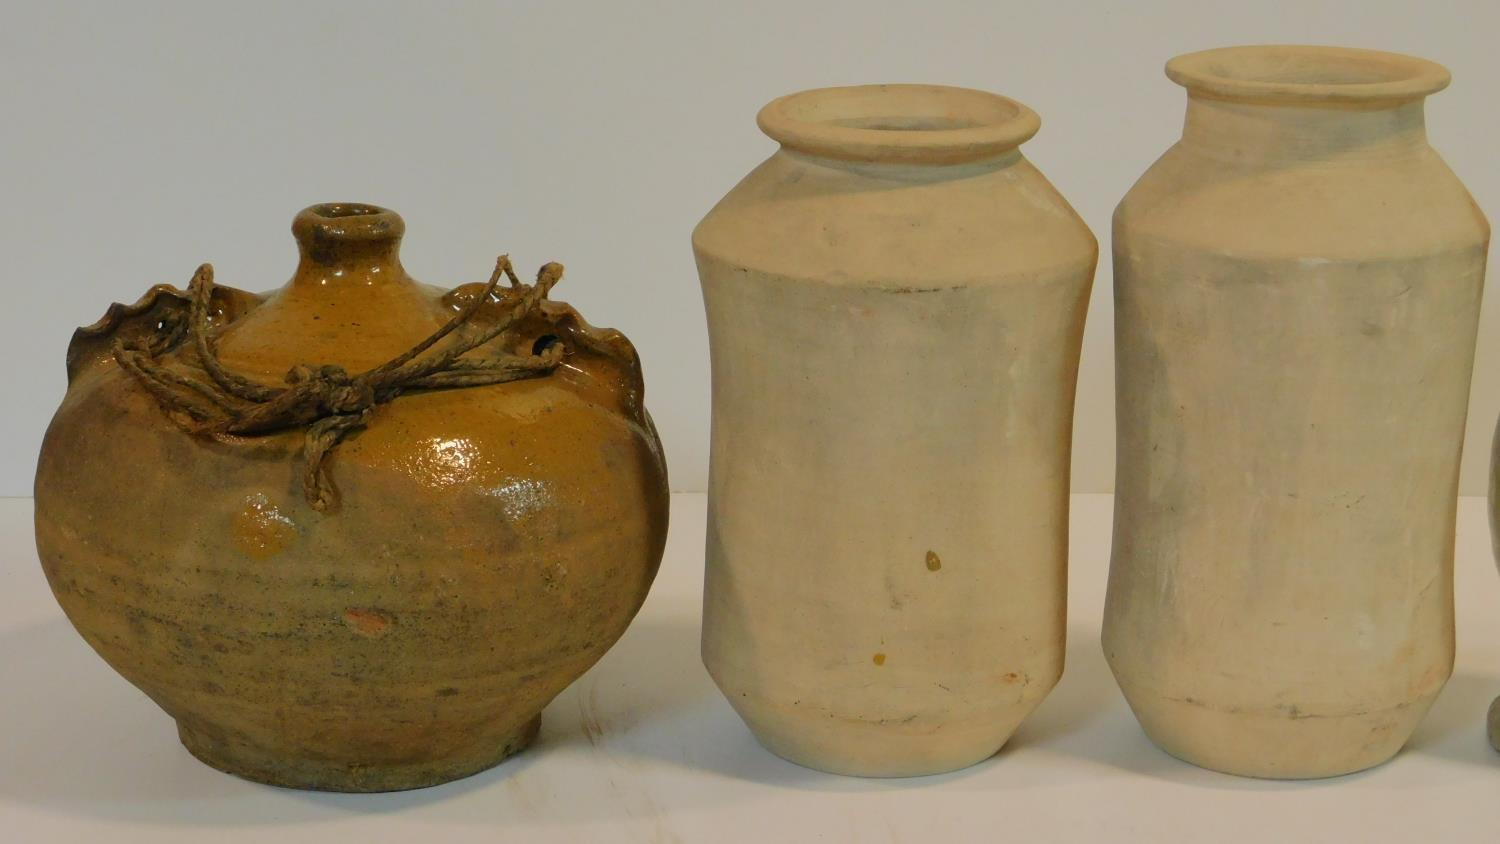 A miscellaneous collection of studio pottery, various jars, a bowl, ceramic chicken and a - Image 2 of 6